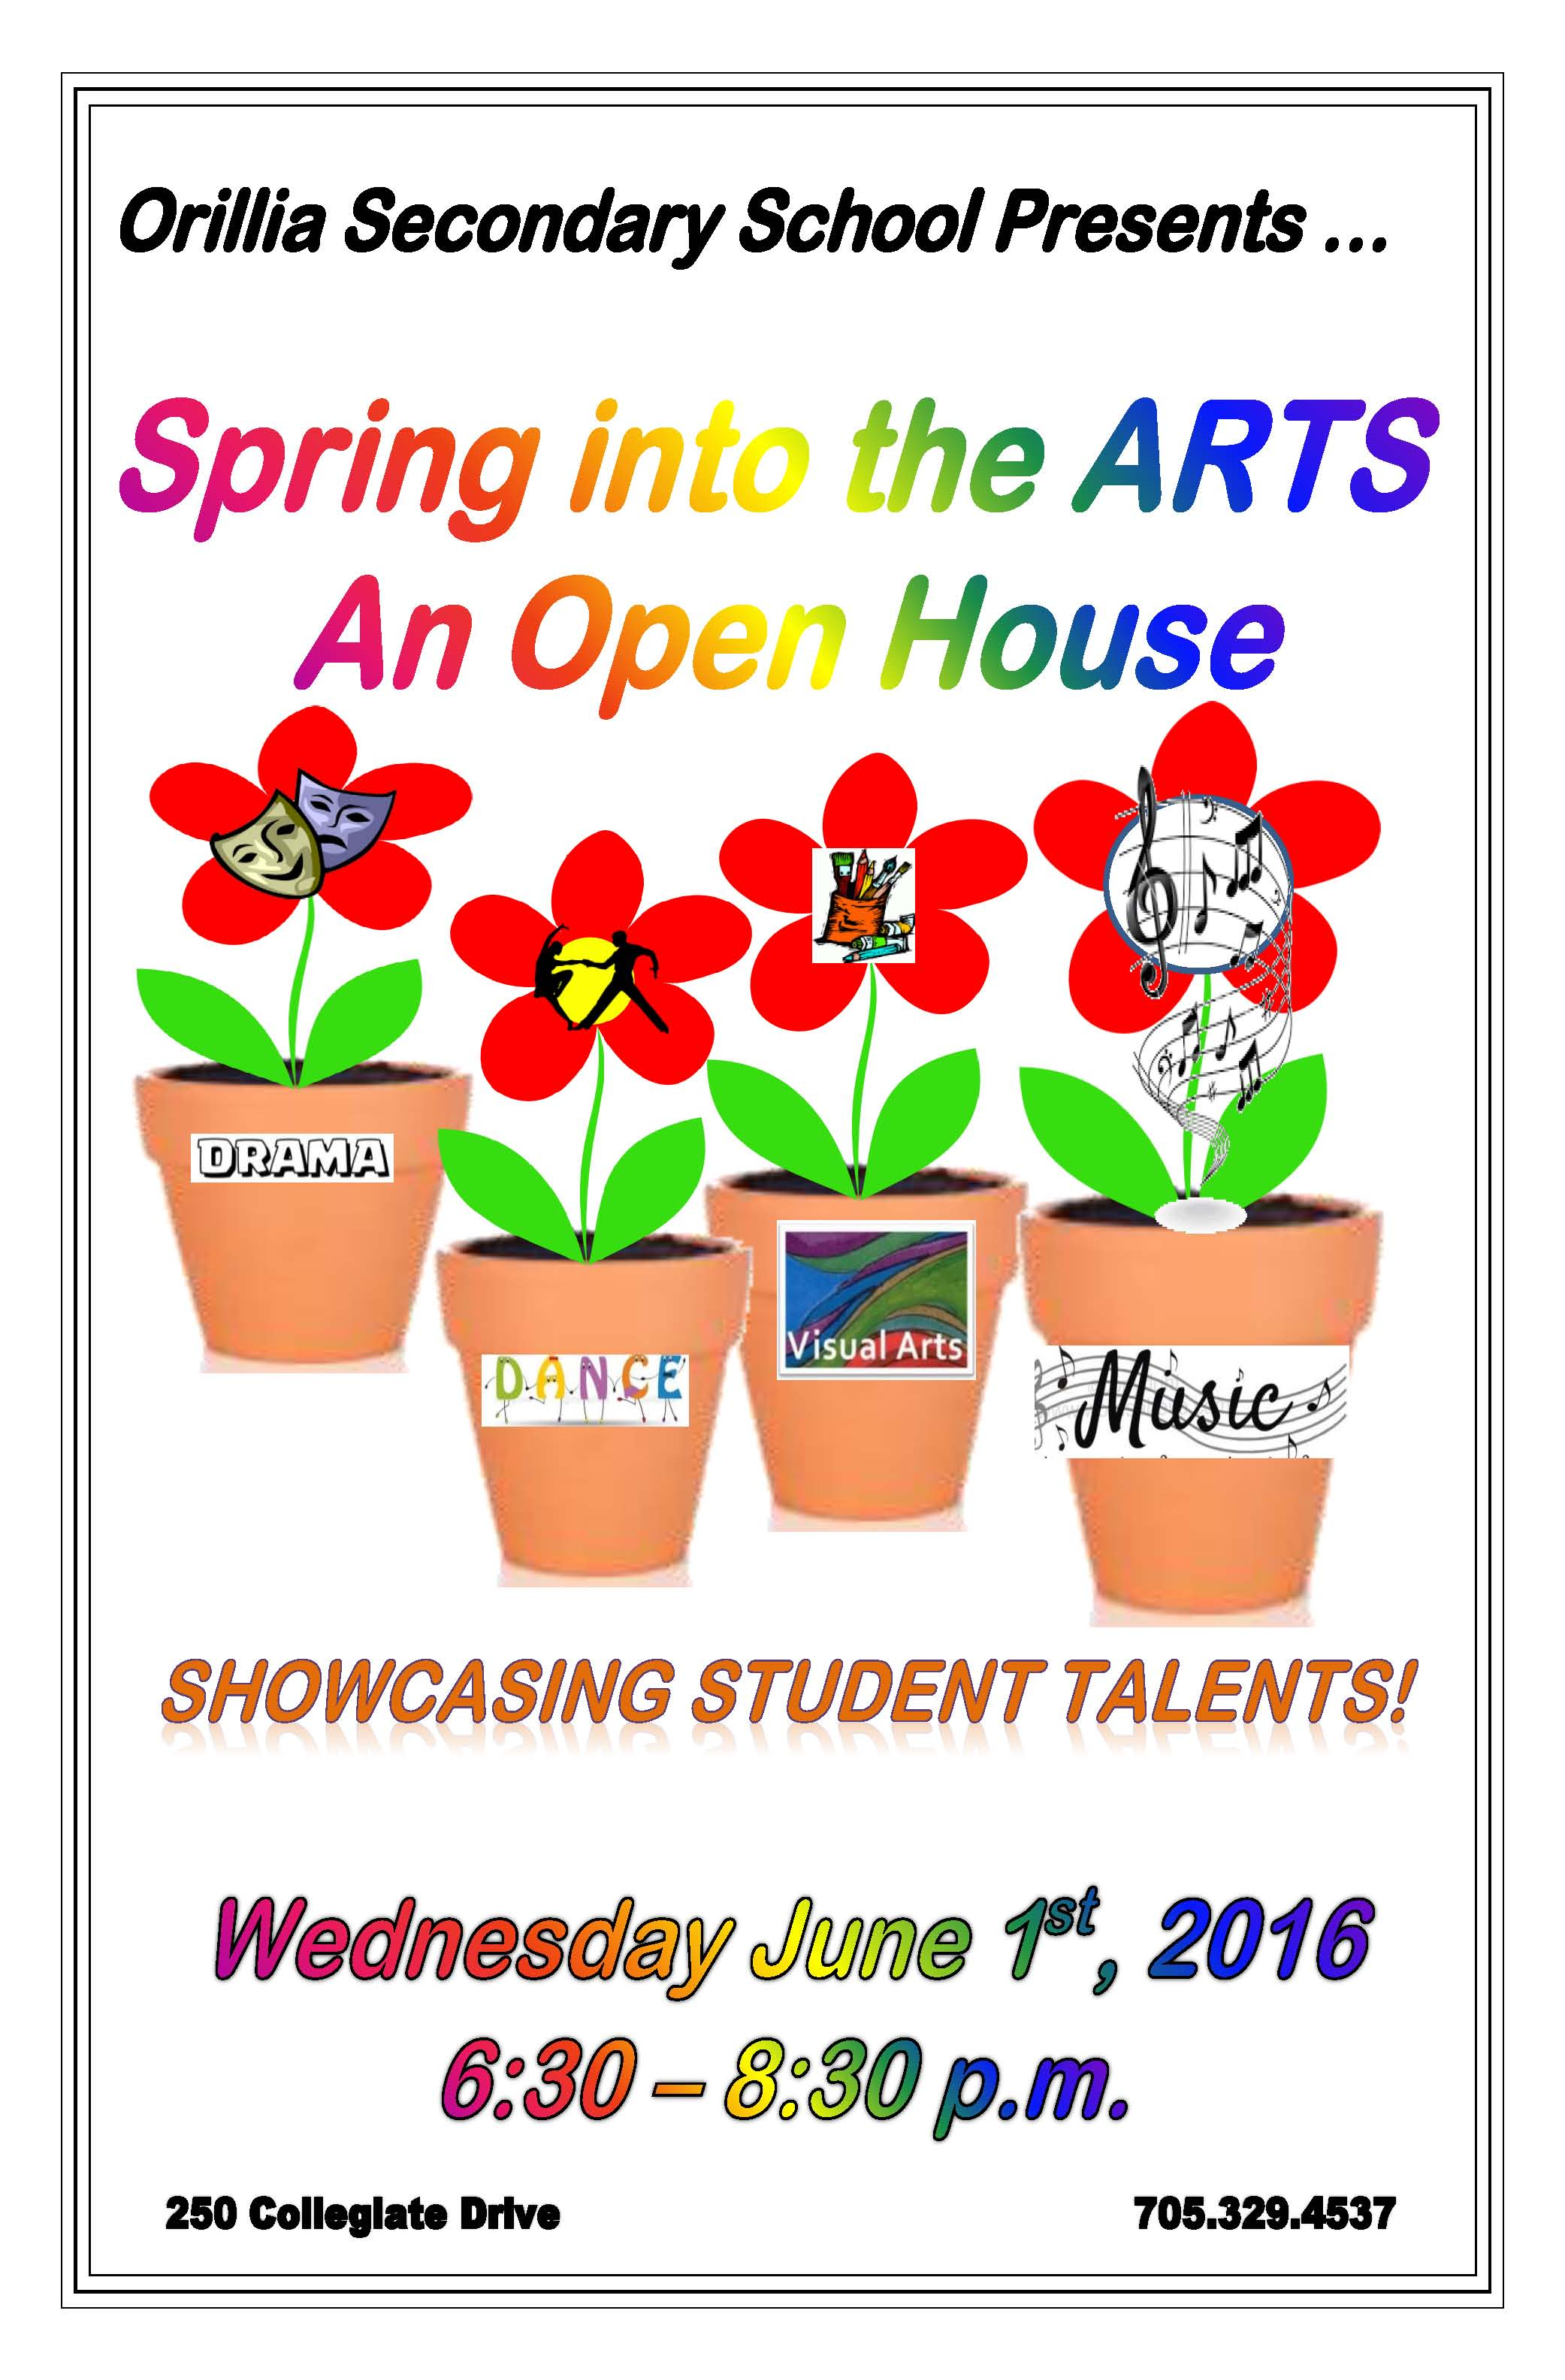 Orillia Secondary School Presents spring into arts v2.jpg